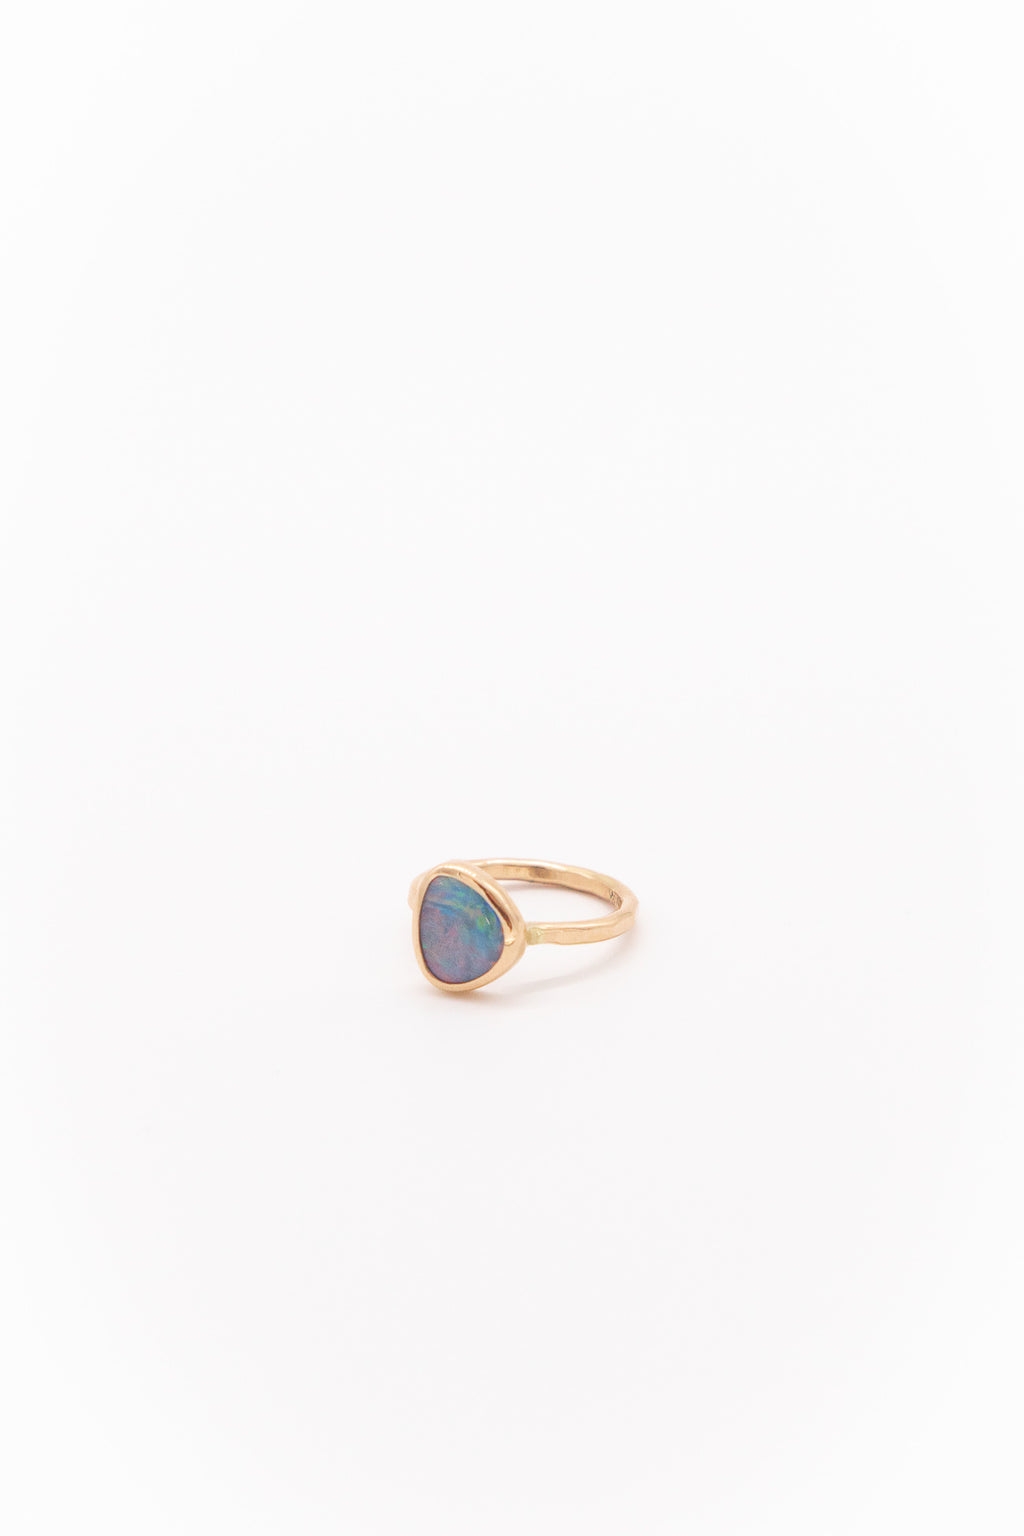 Melissa Joy Manning 14K Yellow Gold Limited Edition Opal Ring